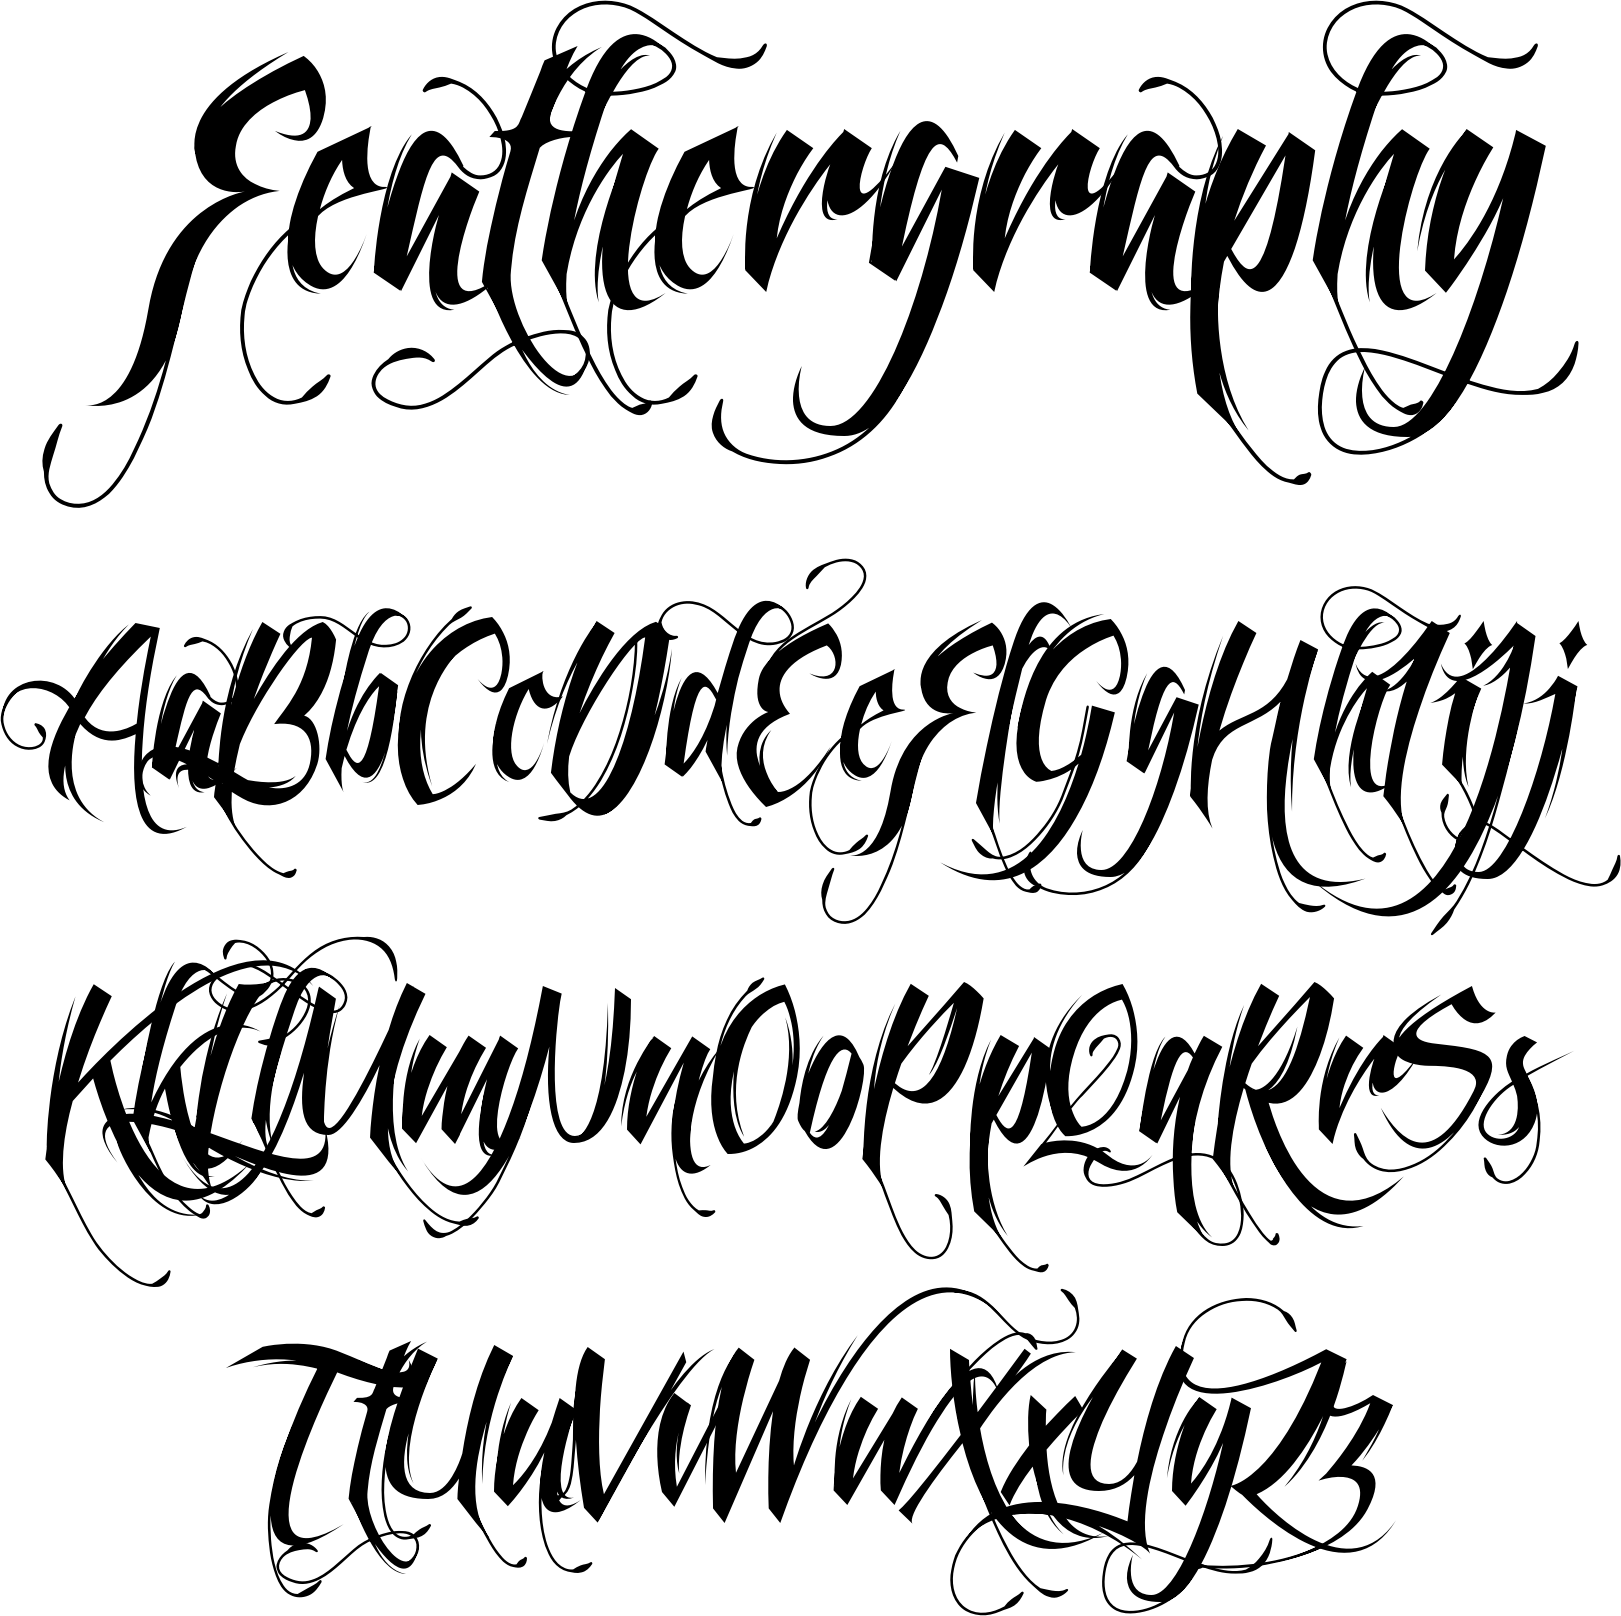 My font for my stay strong tattoo. Tattoo lettering